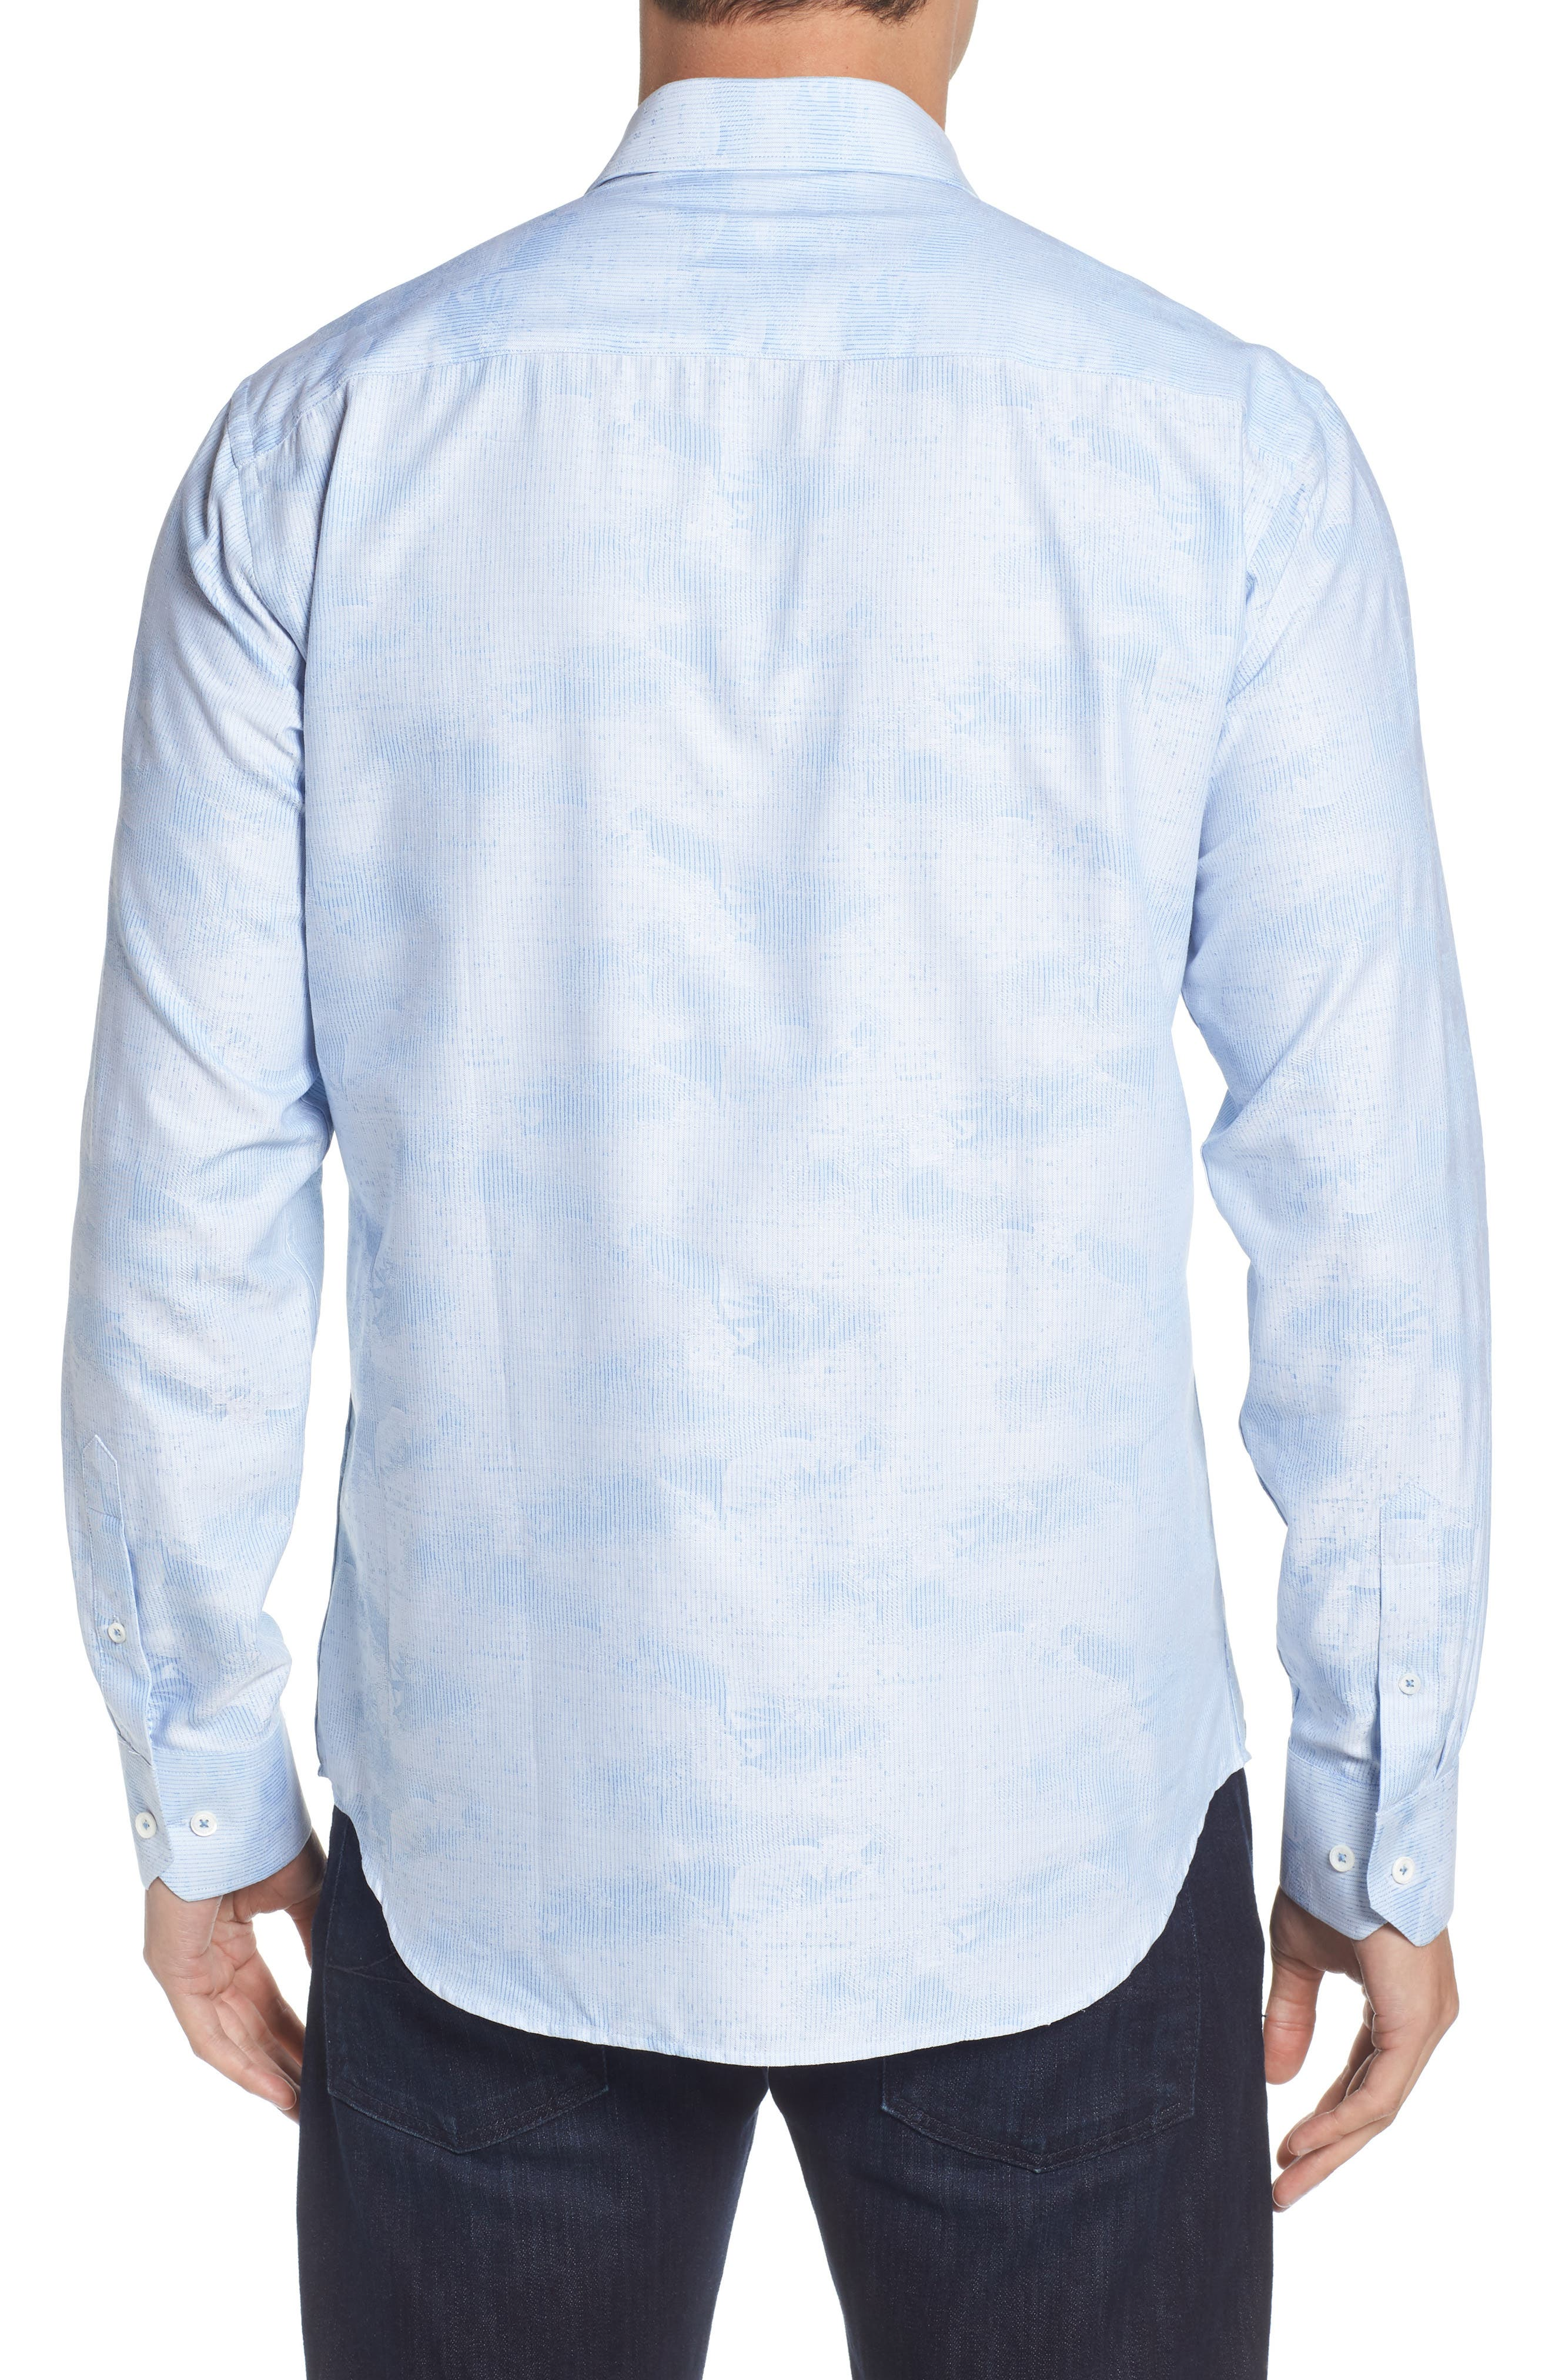 Woven Sport Shirt,                             Alternate thumbnail 2, color,                             459